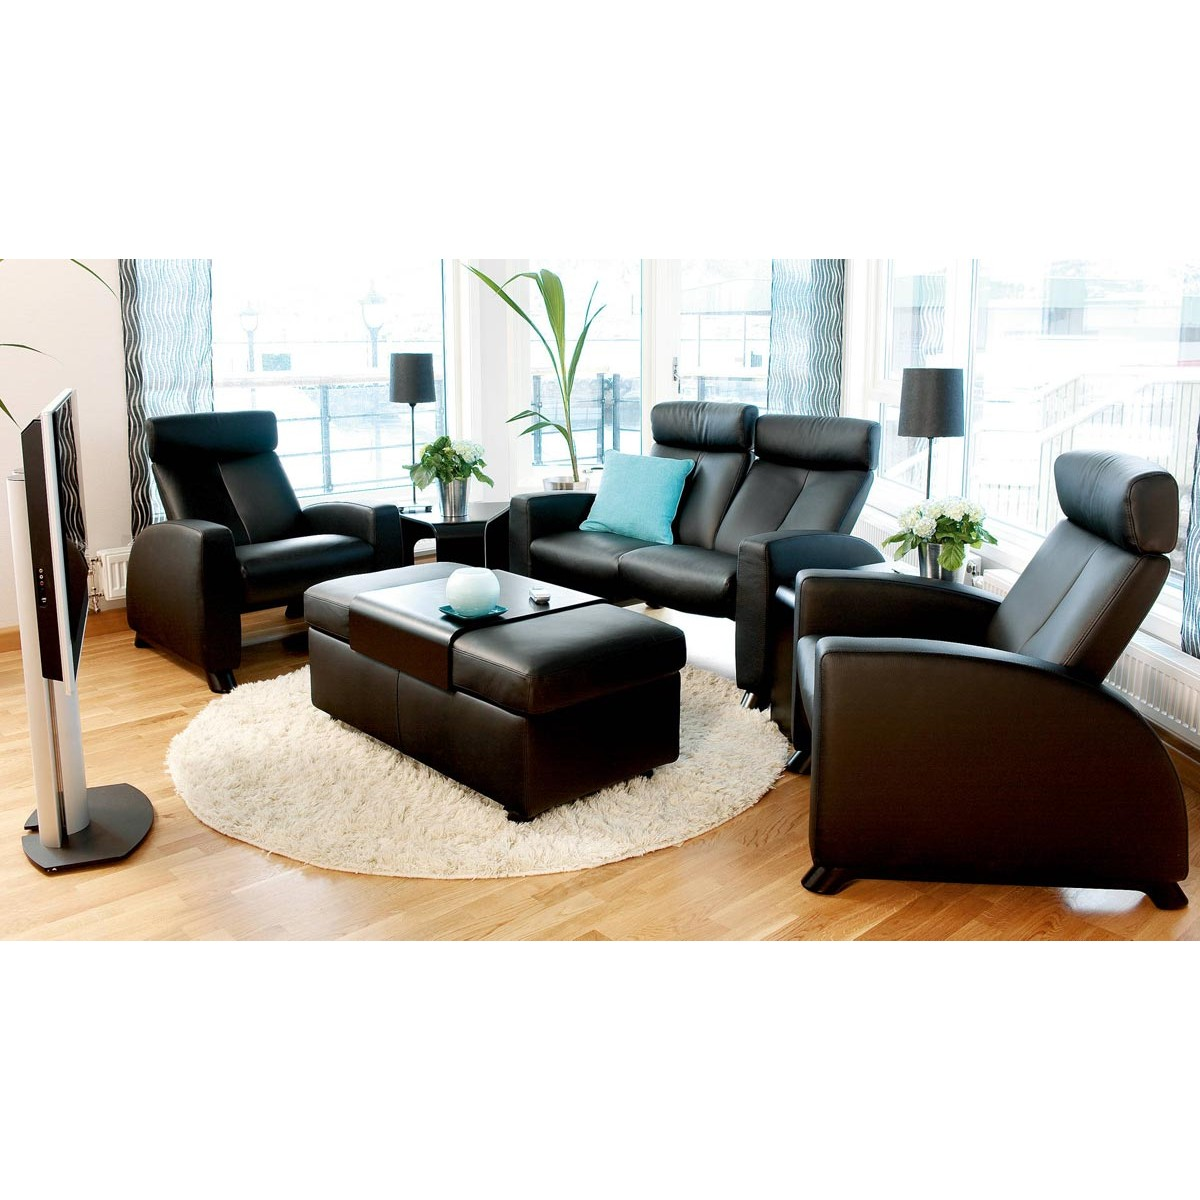 stressless arion high back sofa from 5 by stressless danco modern. Black Bedroom Furniture Sets. Home Design Ideas